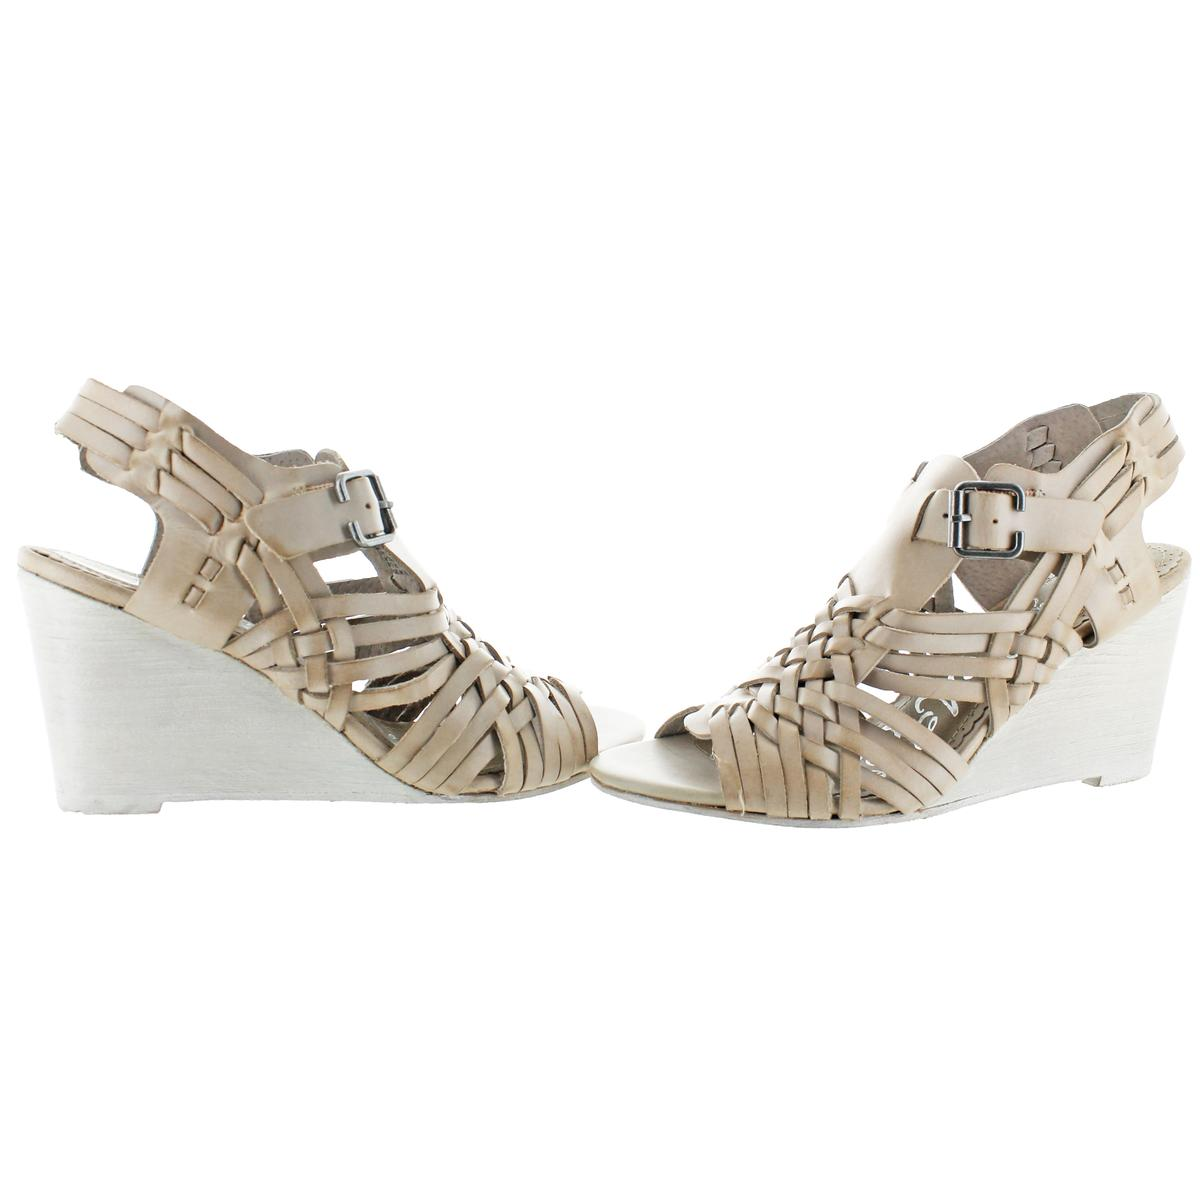 Naughty Monkey Dually Noted Women's Wedge Leather Open Toe Sandals